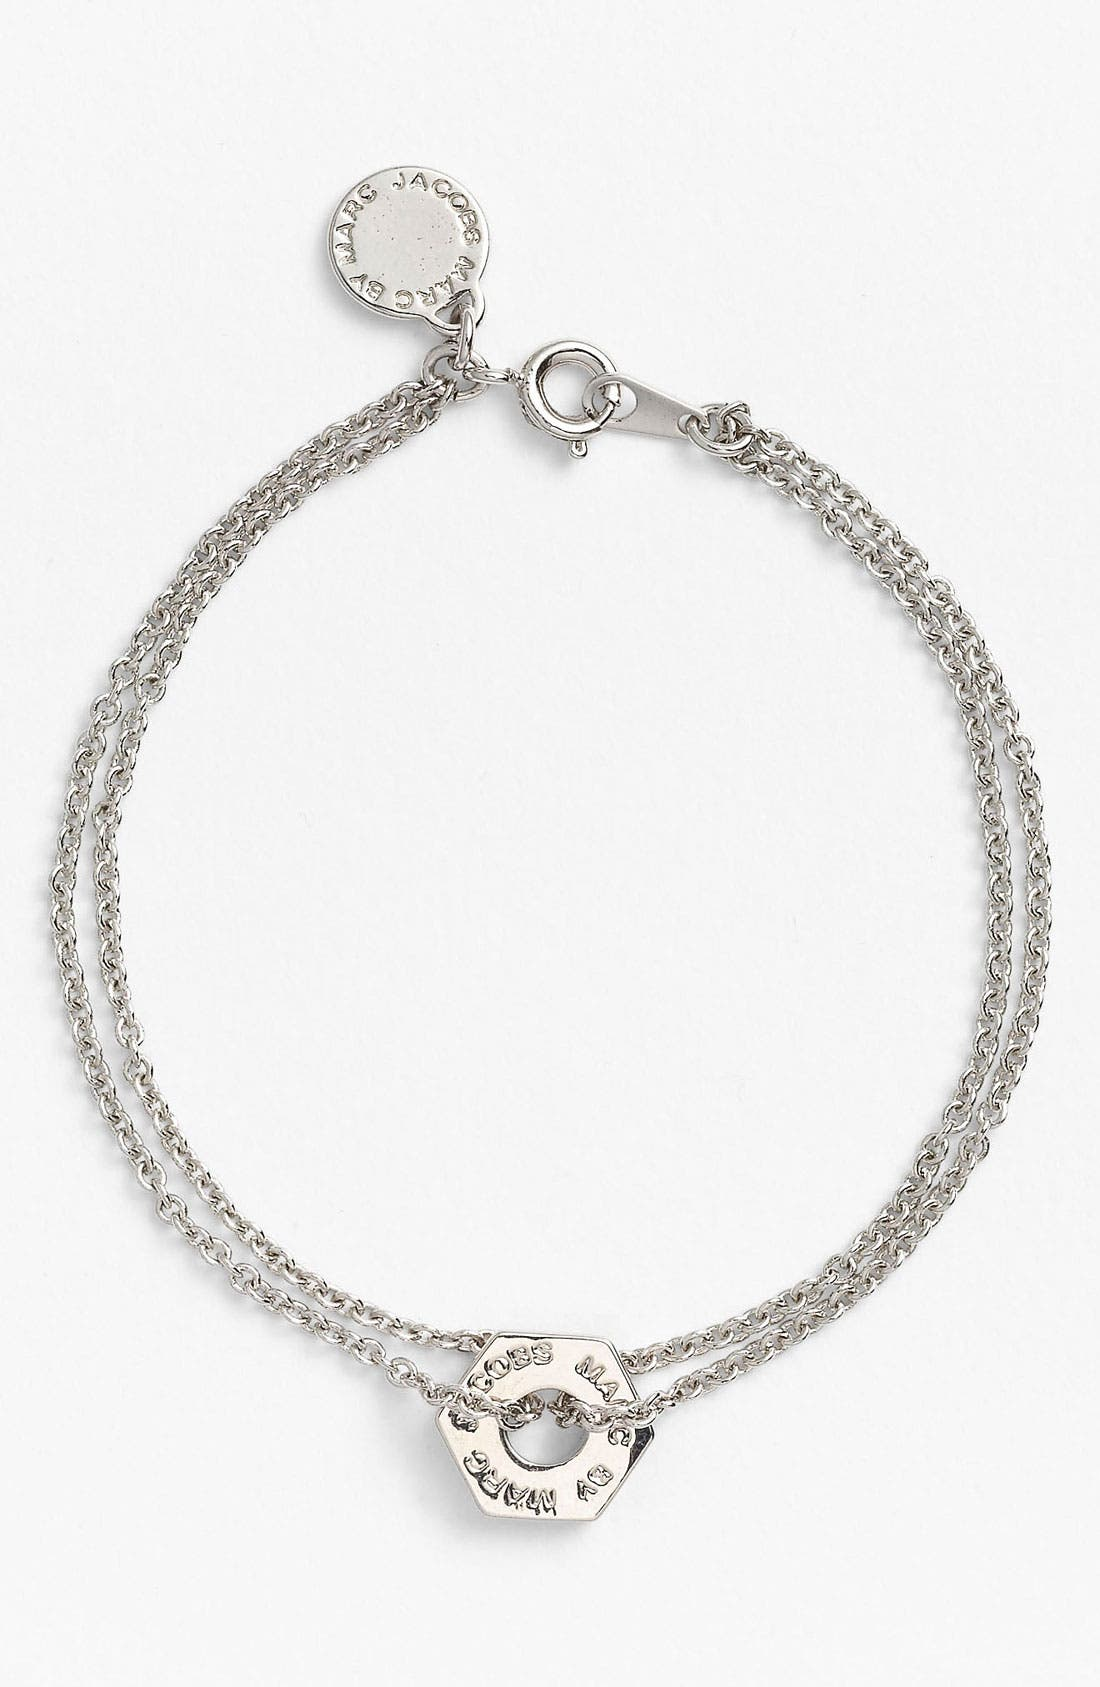 Main Image - MARC BY MARC JACOBS 'Bolts' Line Bracelet